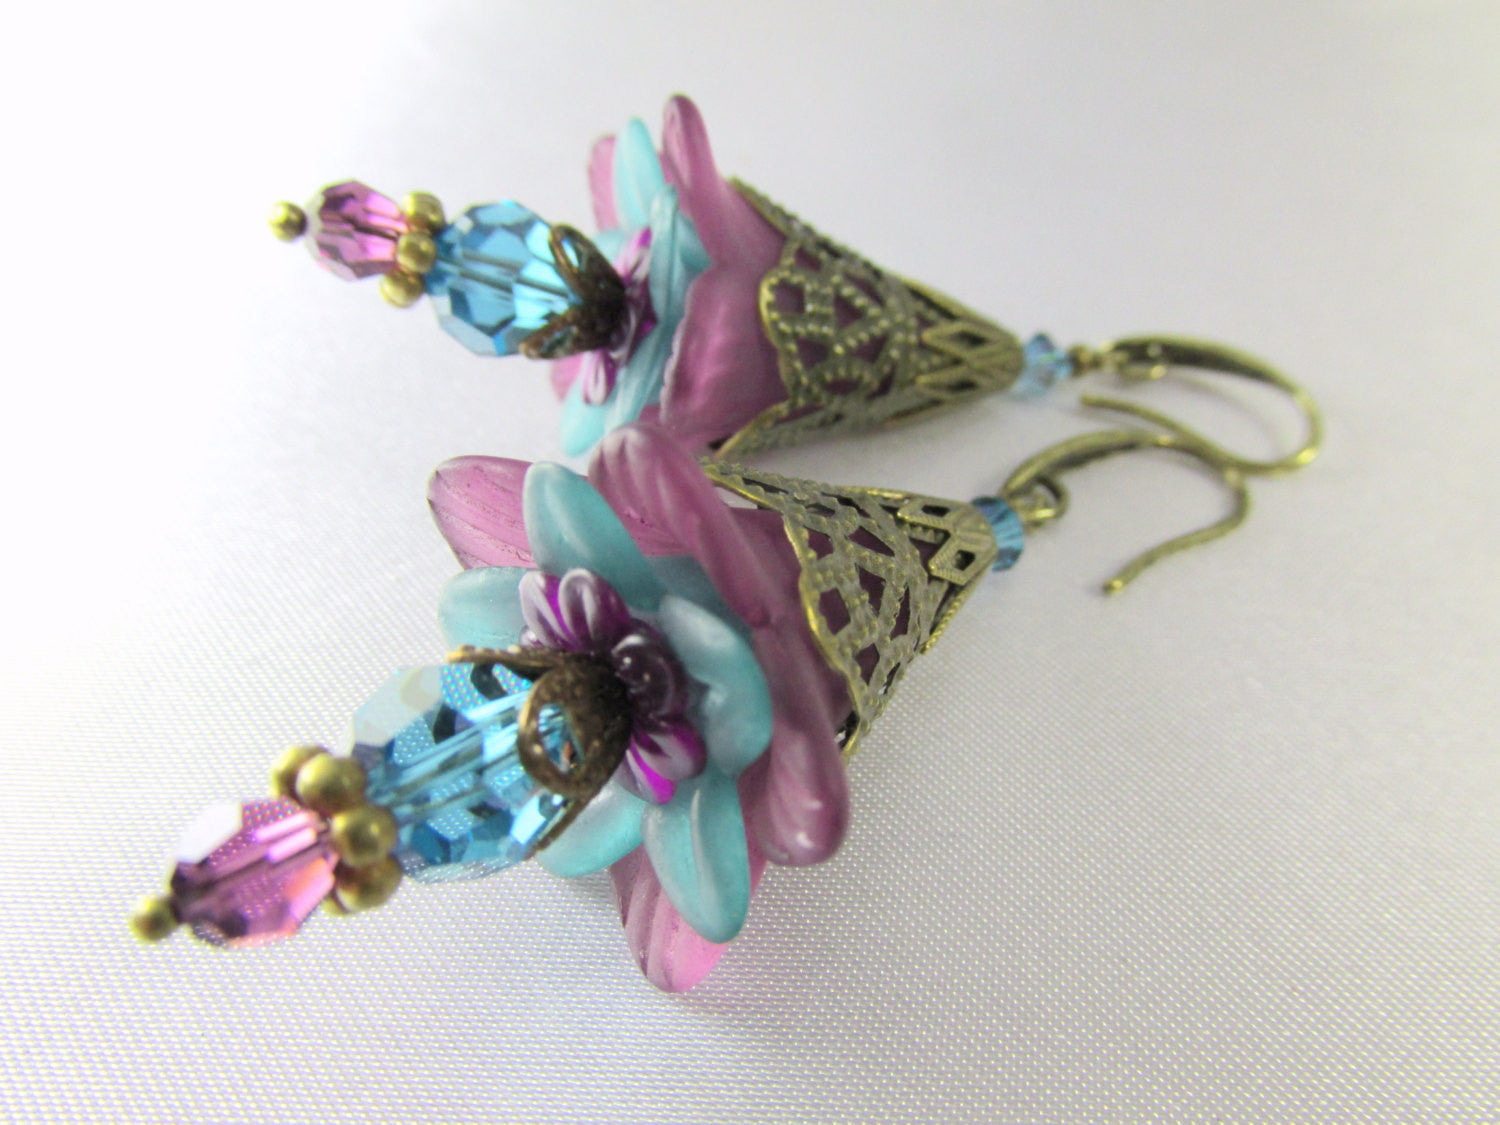 Lily Flower Earrings in Plum Purple and Turquoise Teal Swarovski on Antique Brass - Odyssey Creations